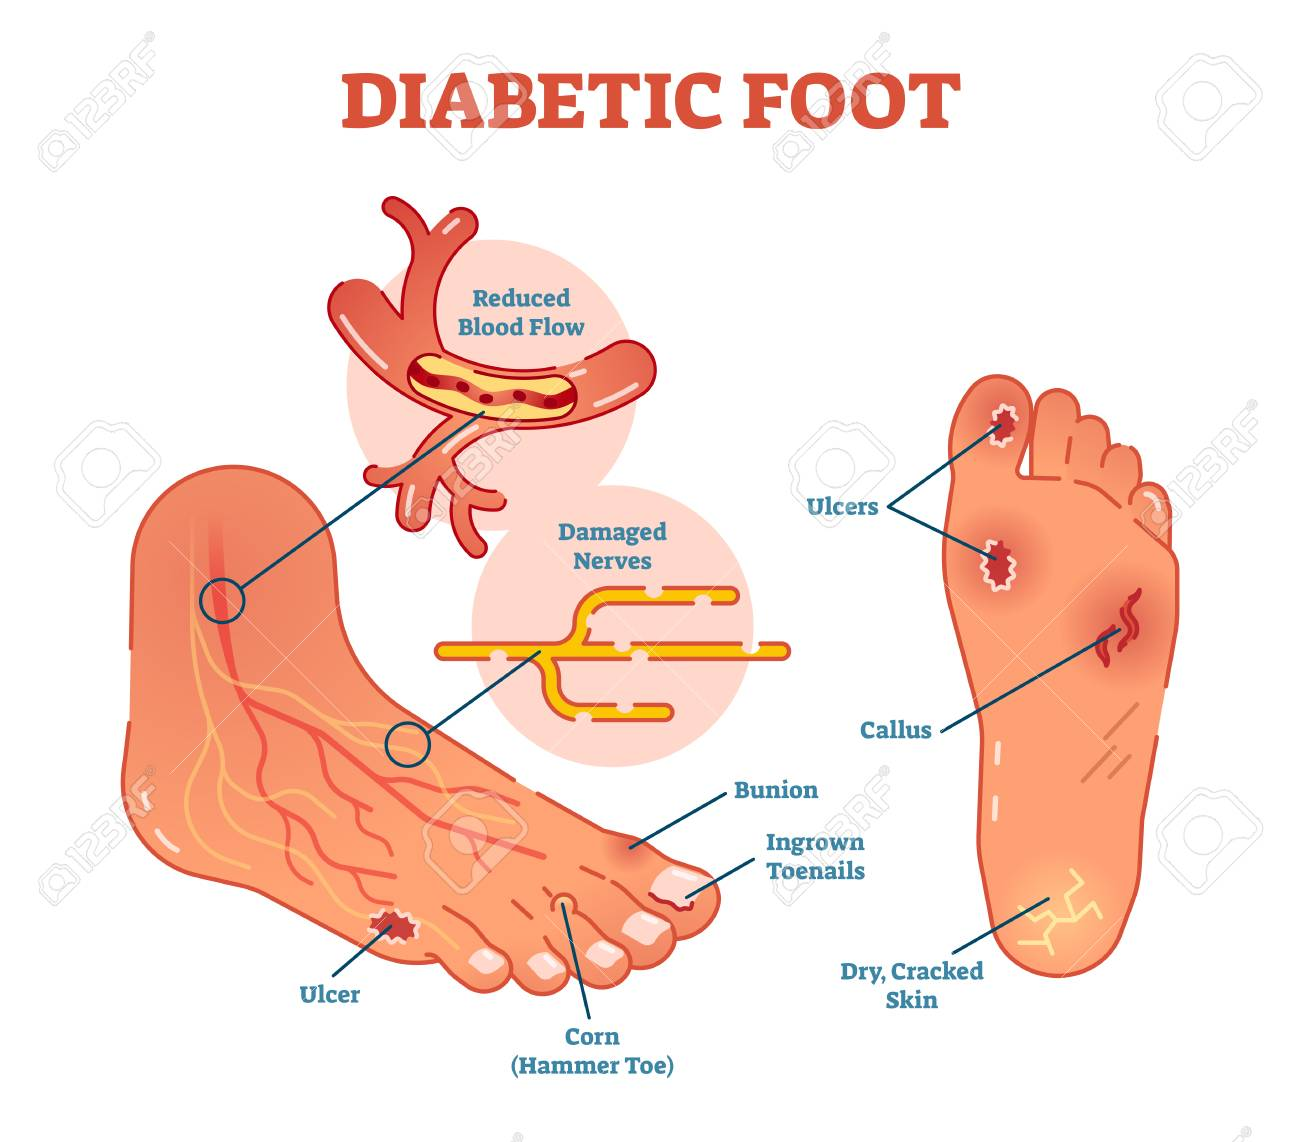 hight resolution of diabetic foot medical vector illustration scheme with common foot conditions stock vector 94739246